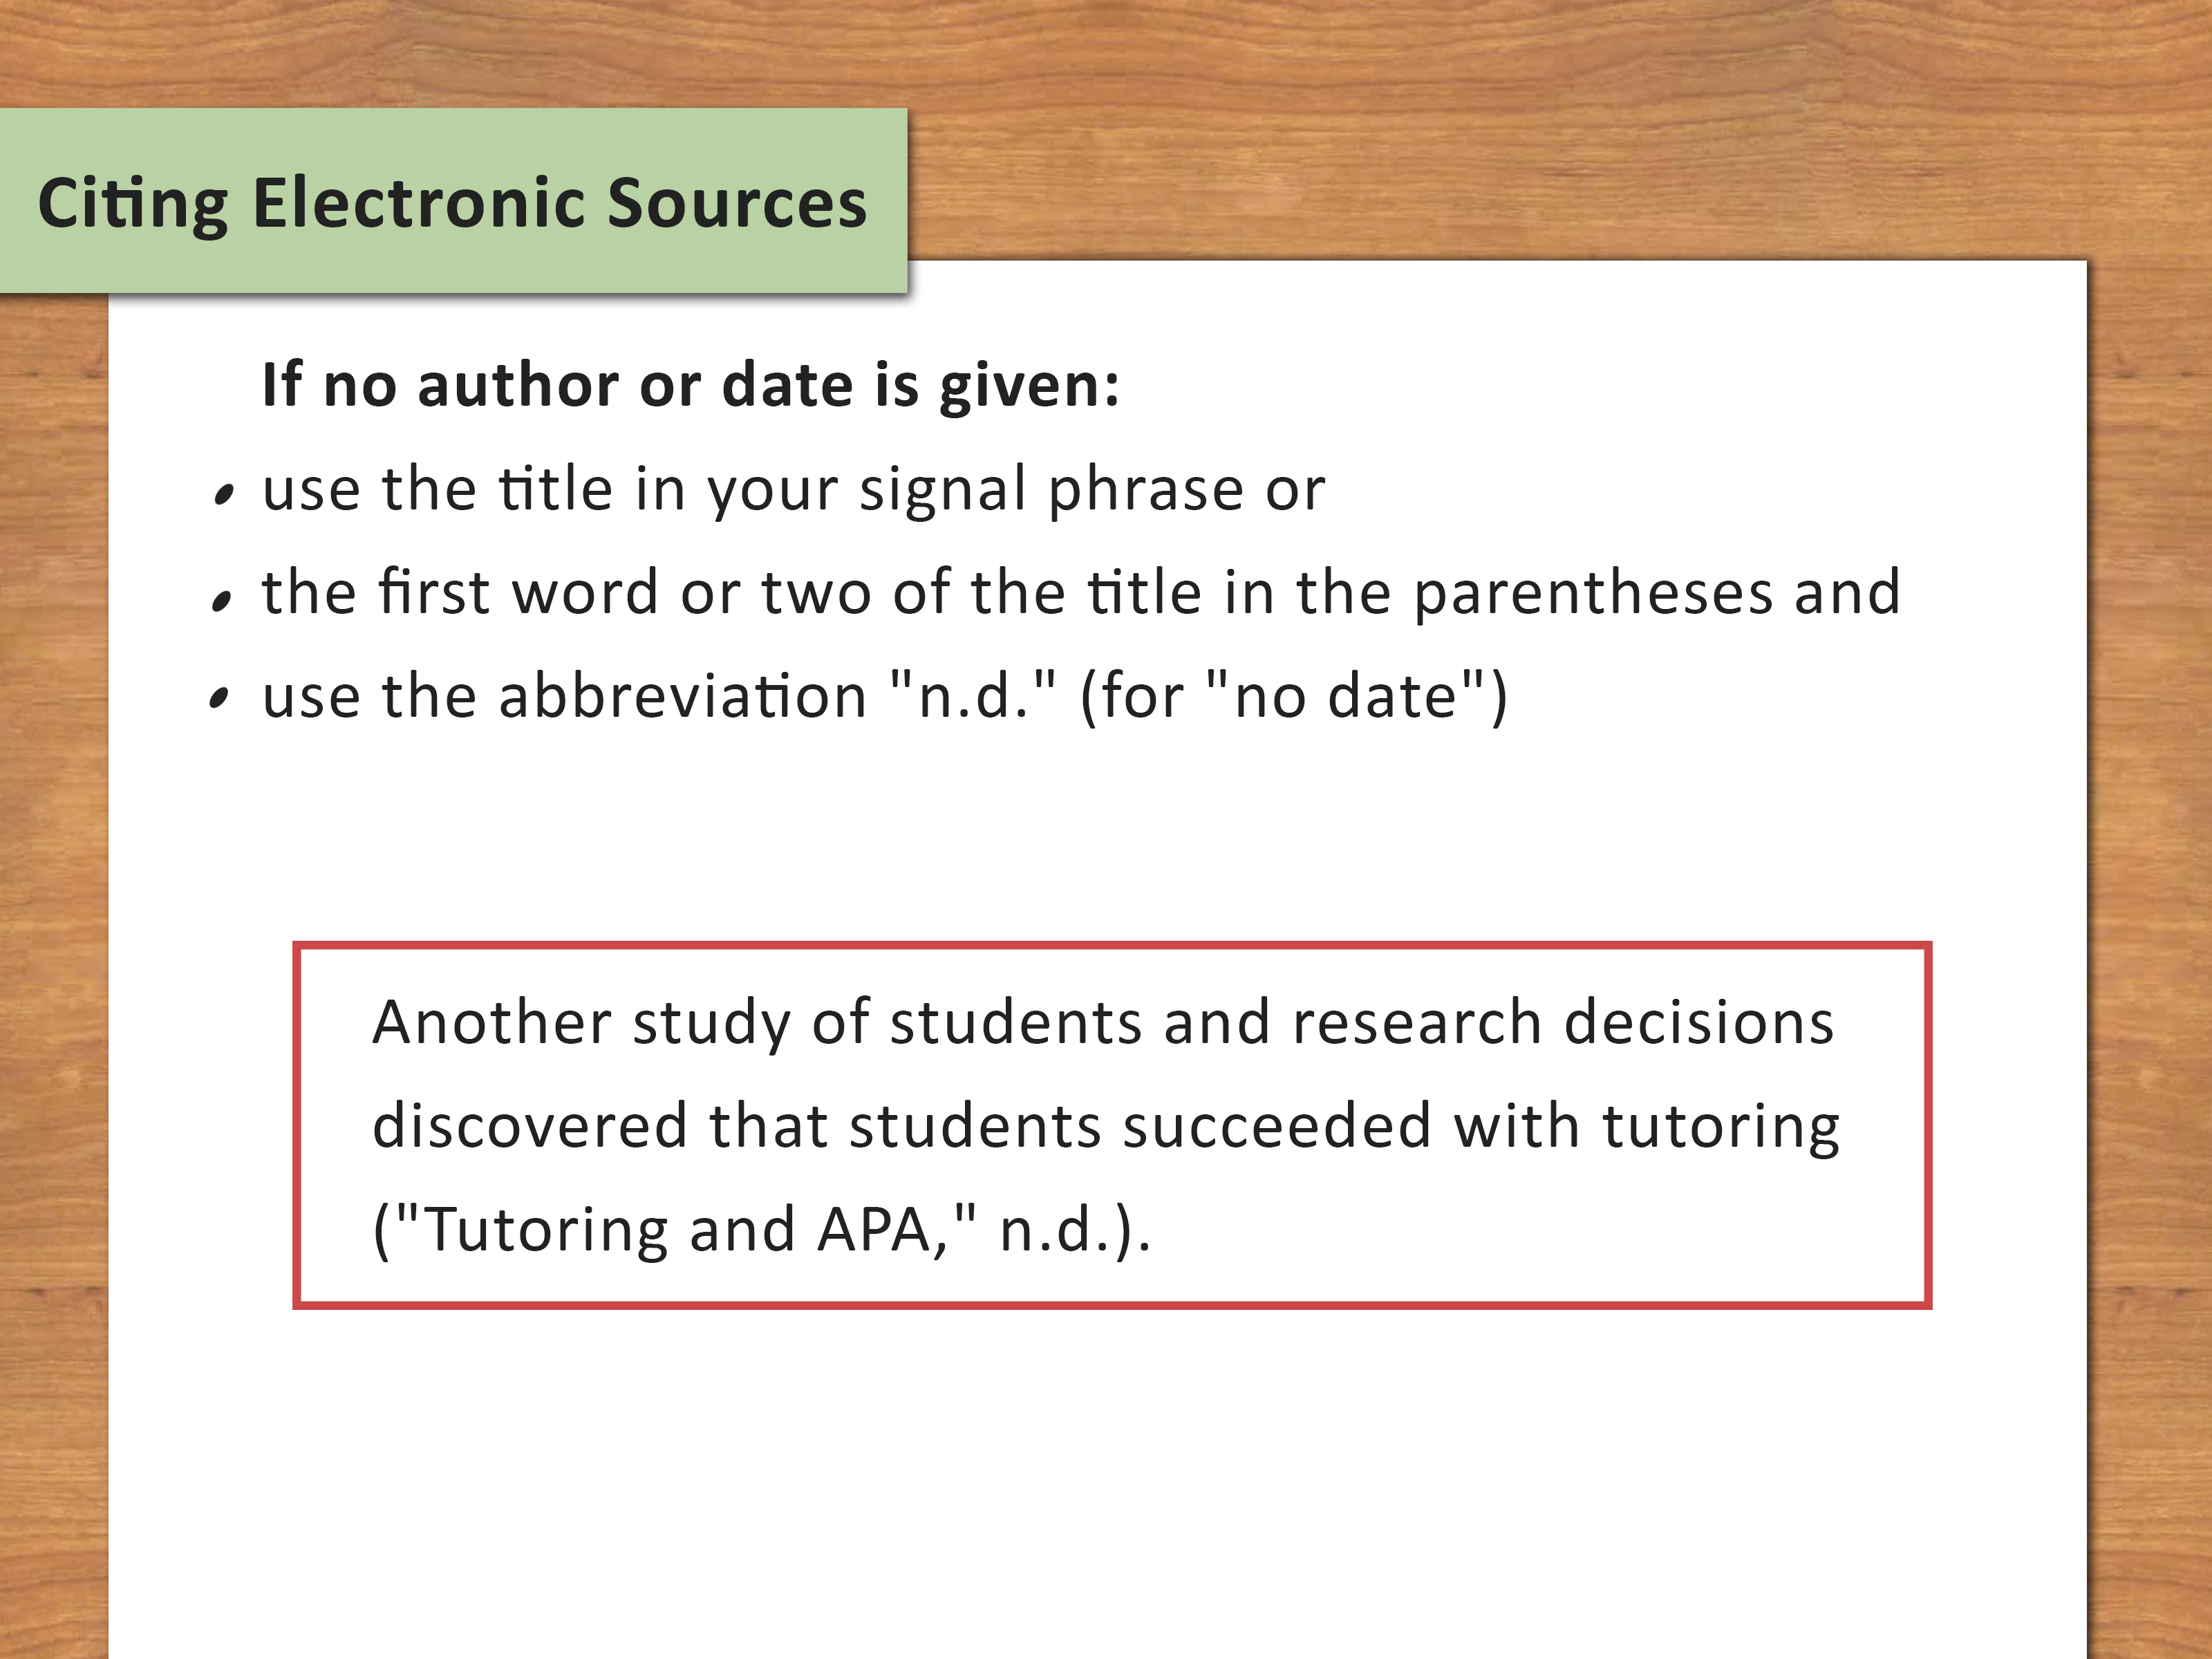 020 Research Paper Citing Sources In Paragraph Apa Use Internal Citations Step Impressive How To Cite A Style Full